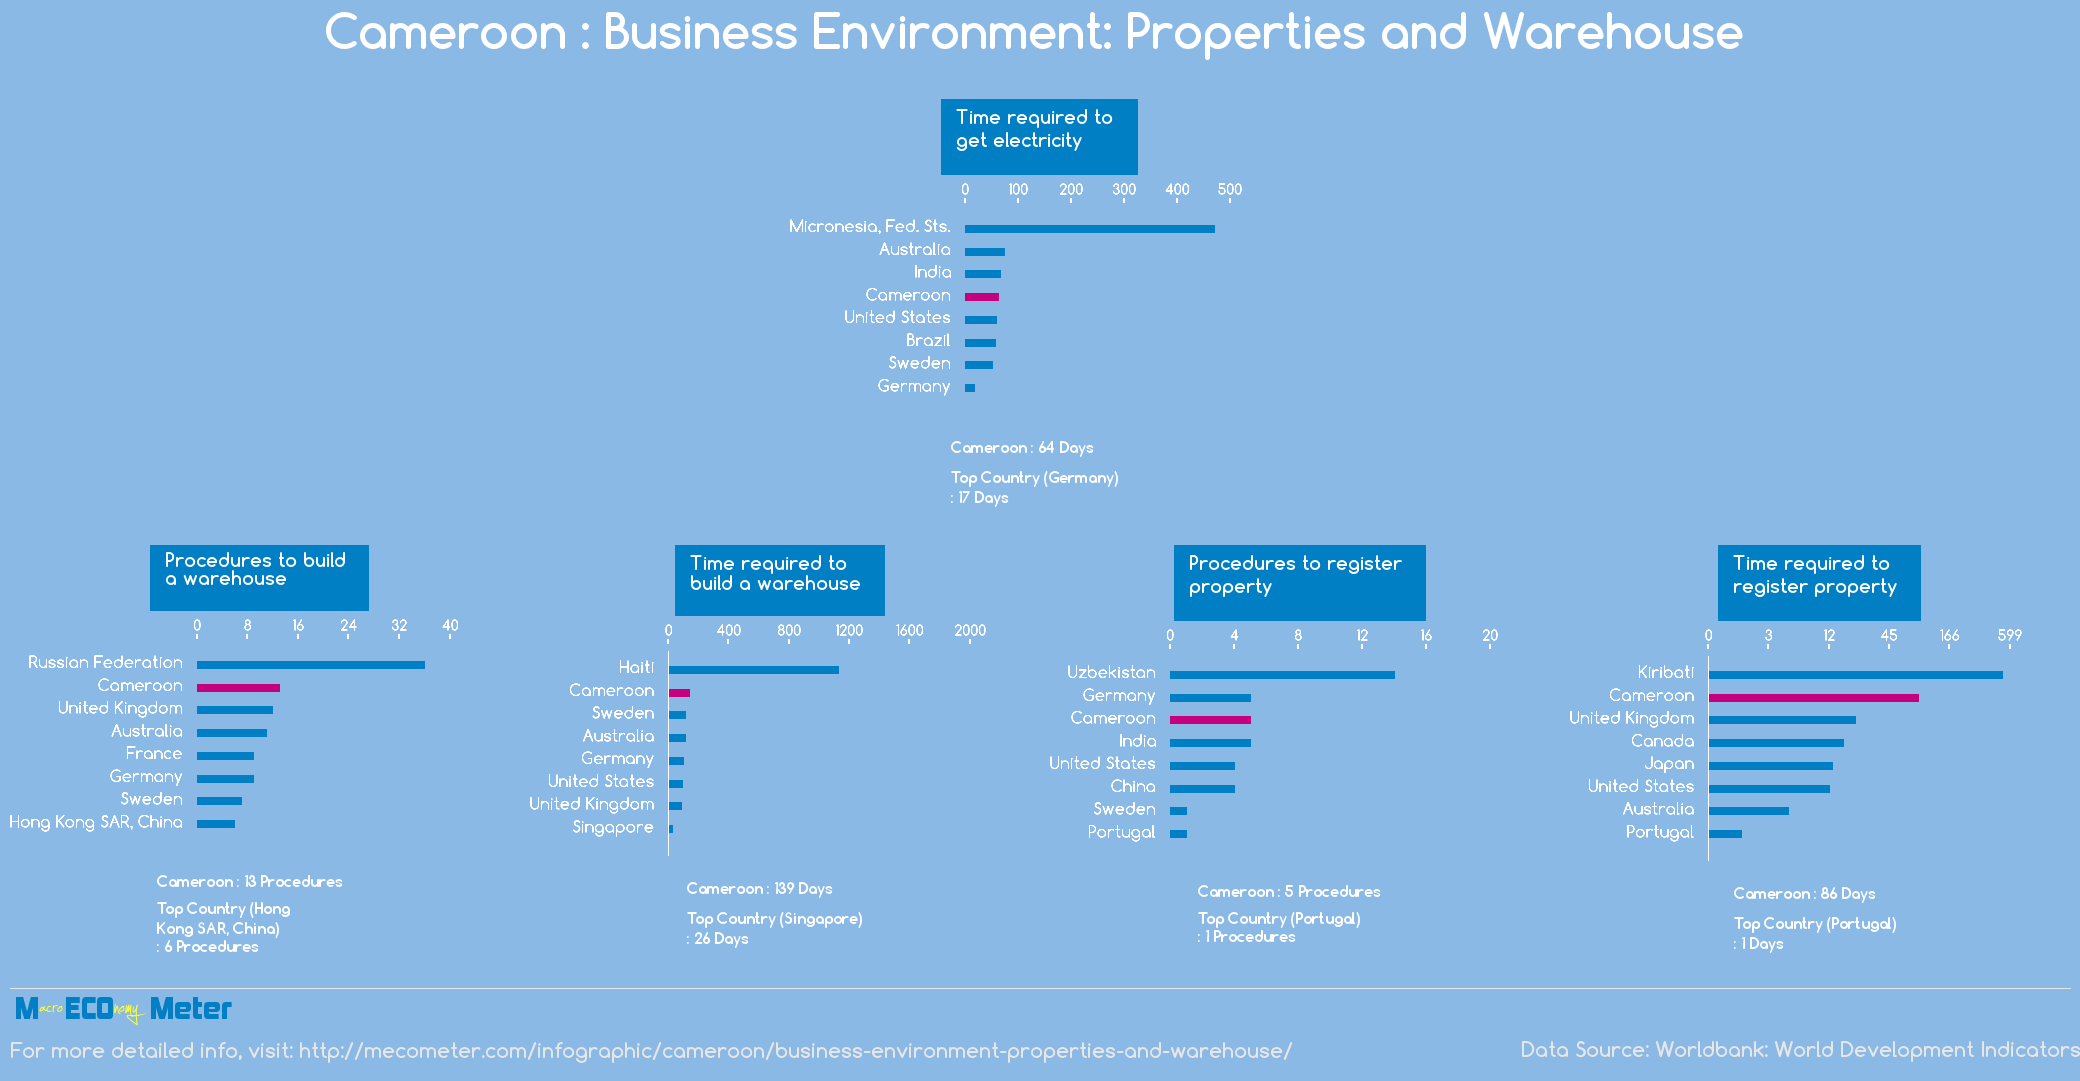 Cameroon : Business Environment: Properties and Warehouse